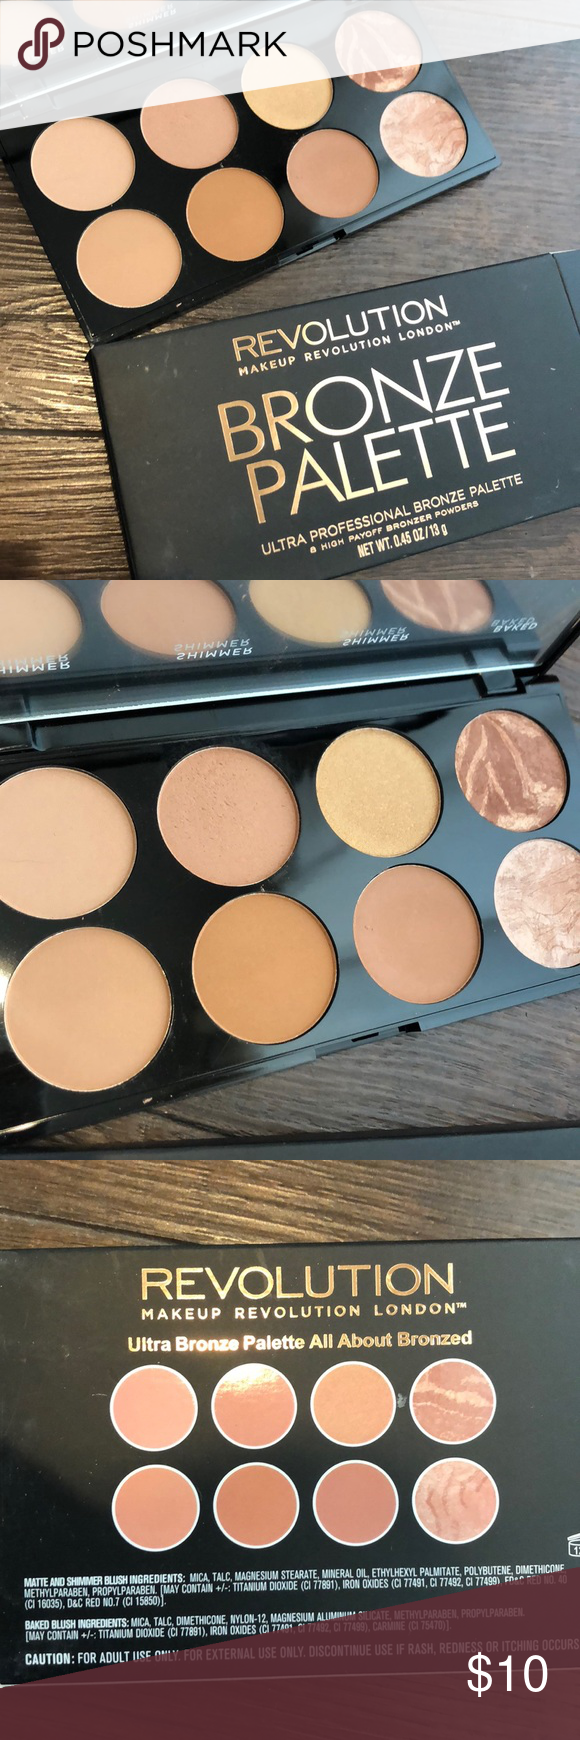 Makeup Revolution Ultra Bronzer Palette Only one shade was